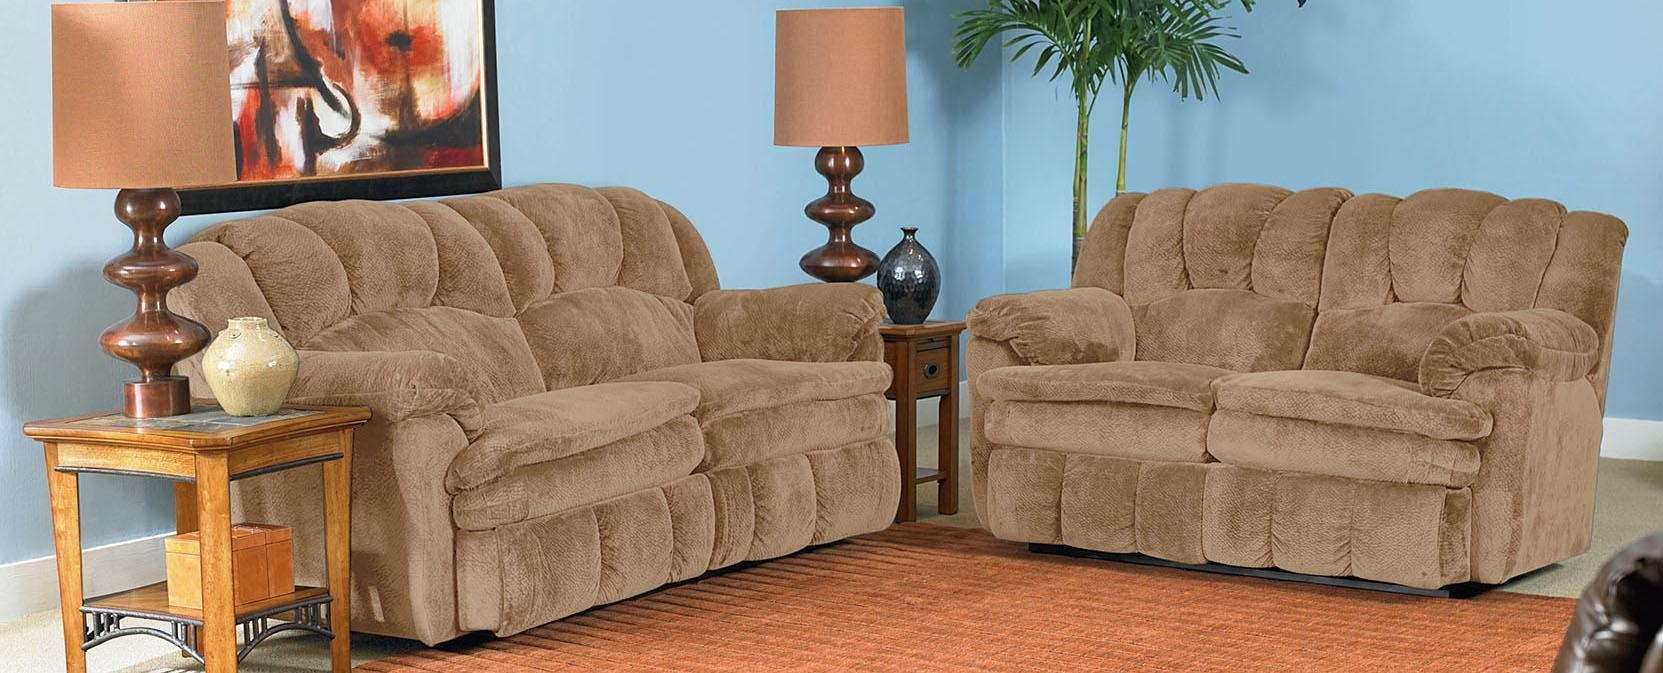 Sofas And Loveseats | Lane Sofa And Loveseat Sets | Lane Furniture Within Lane Furniture Sofas (Image 20 of 20)